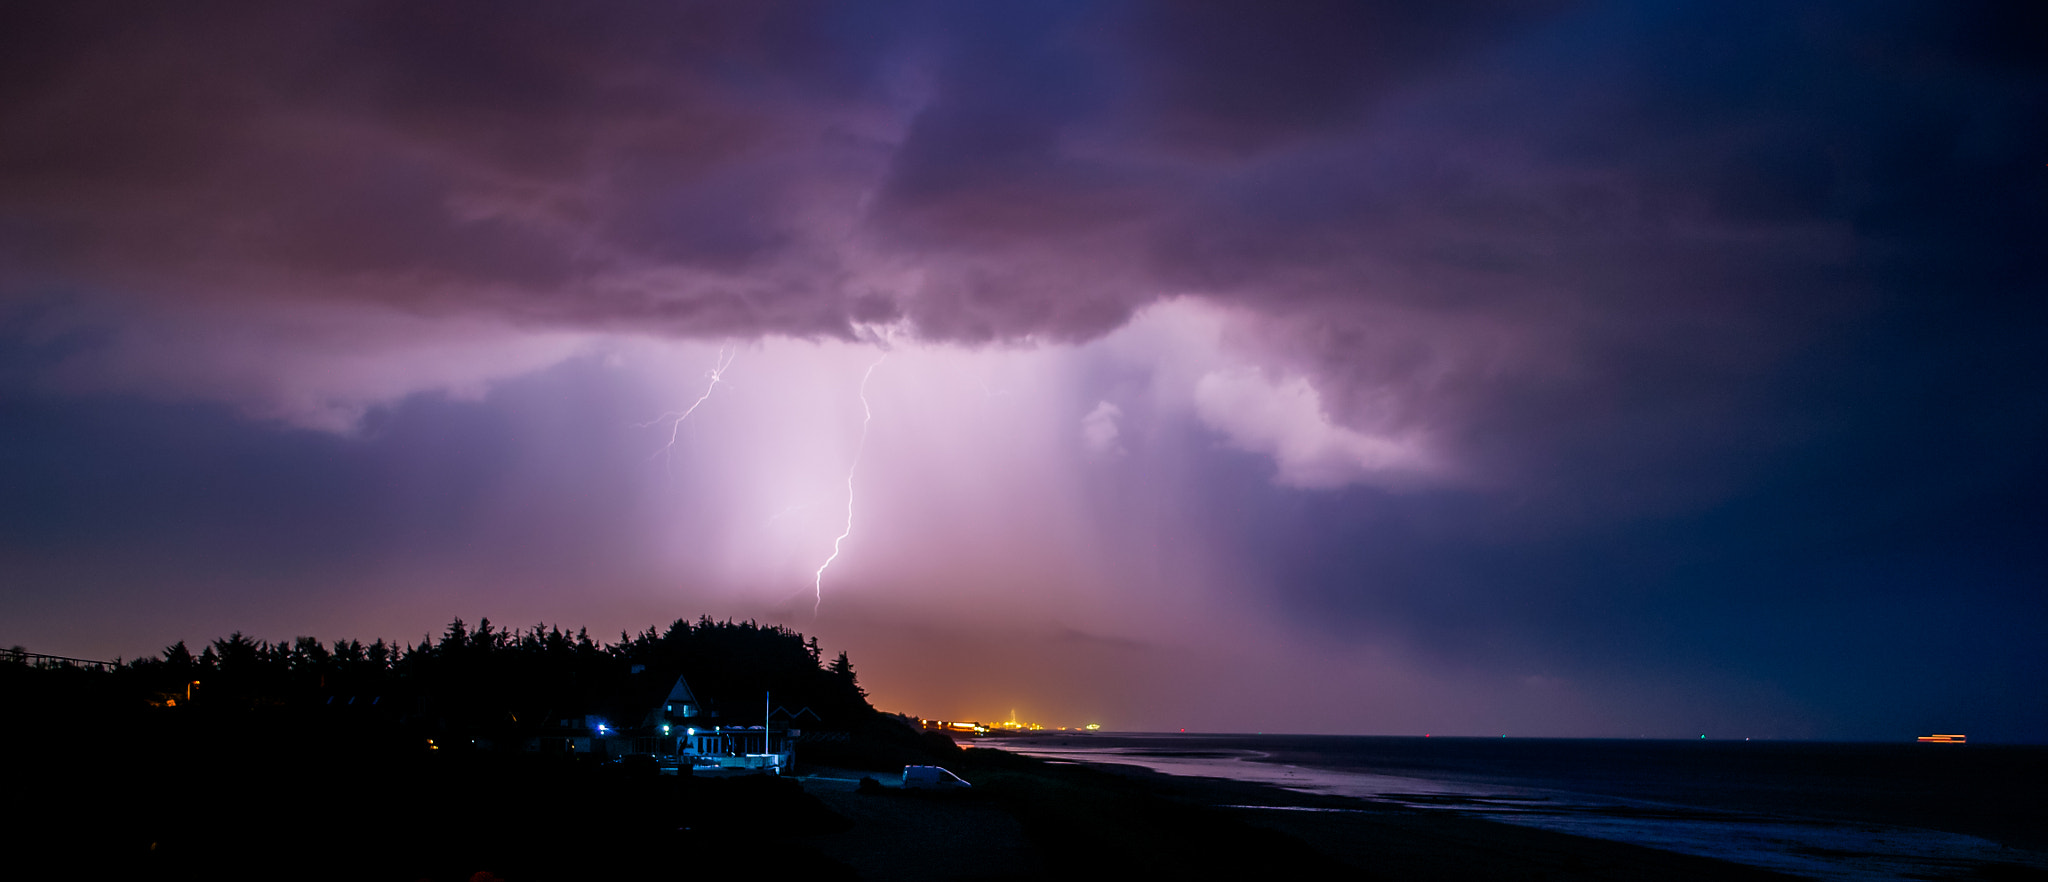 Photograph Batten down the hatches - the storm is coming by Elias Settevik on 500px